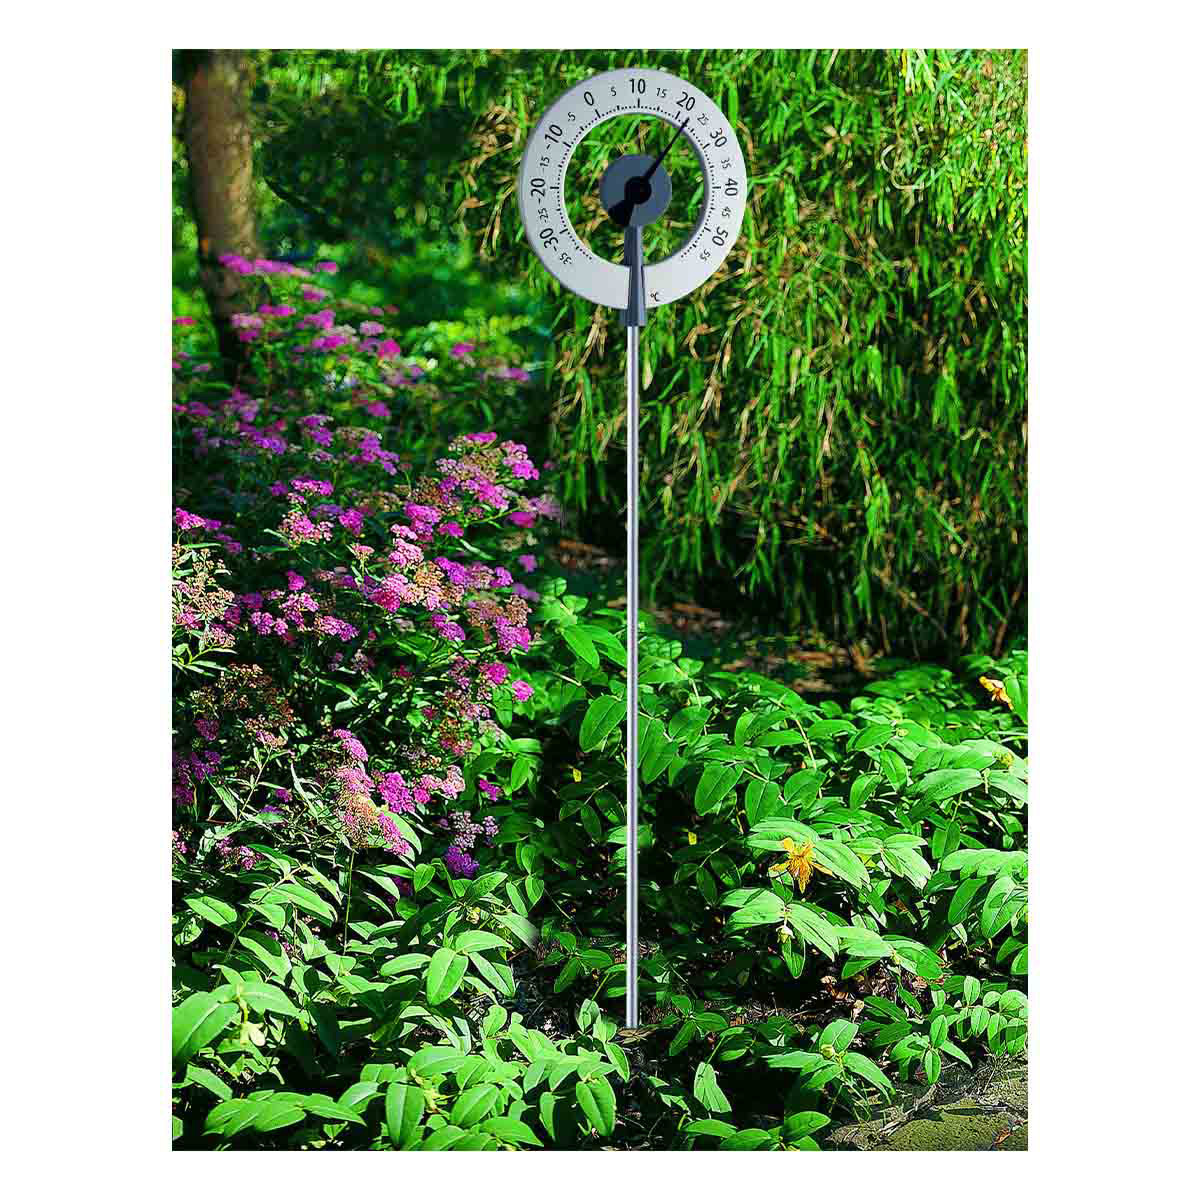 12-2055-10-analoges-design-gartenthermometer-lollipop-anwendung-1200x1200px.jpg